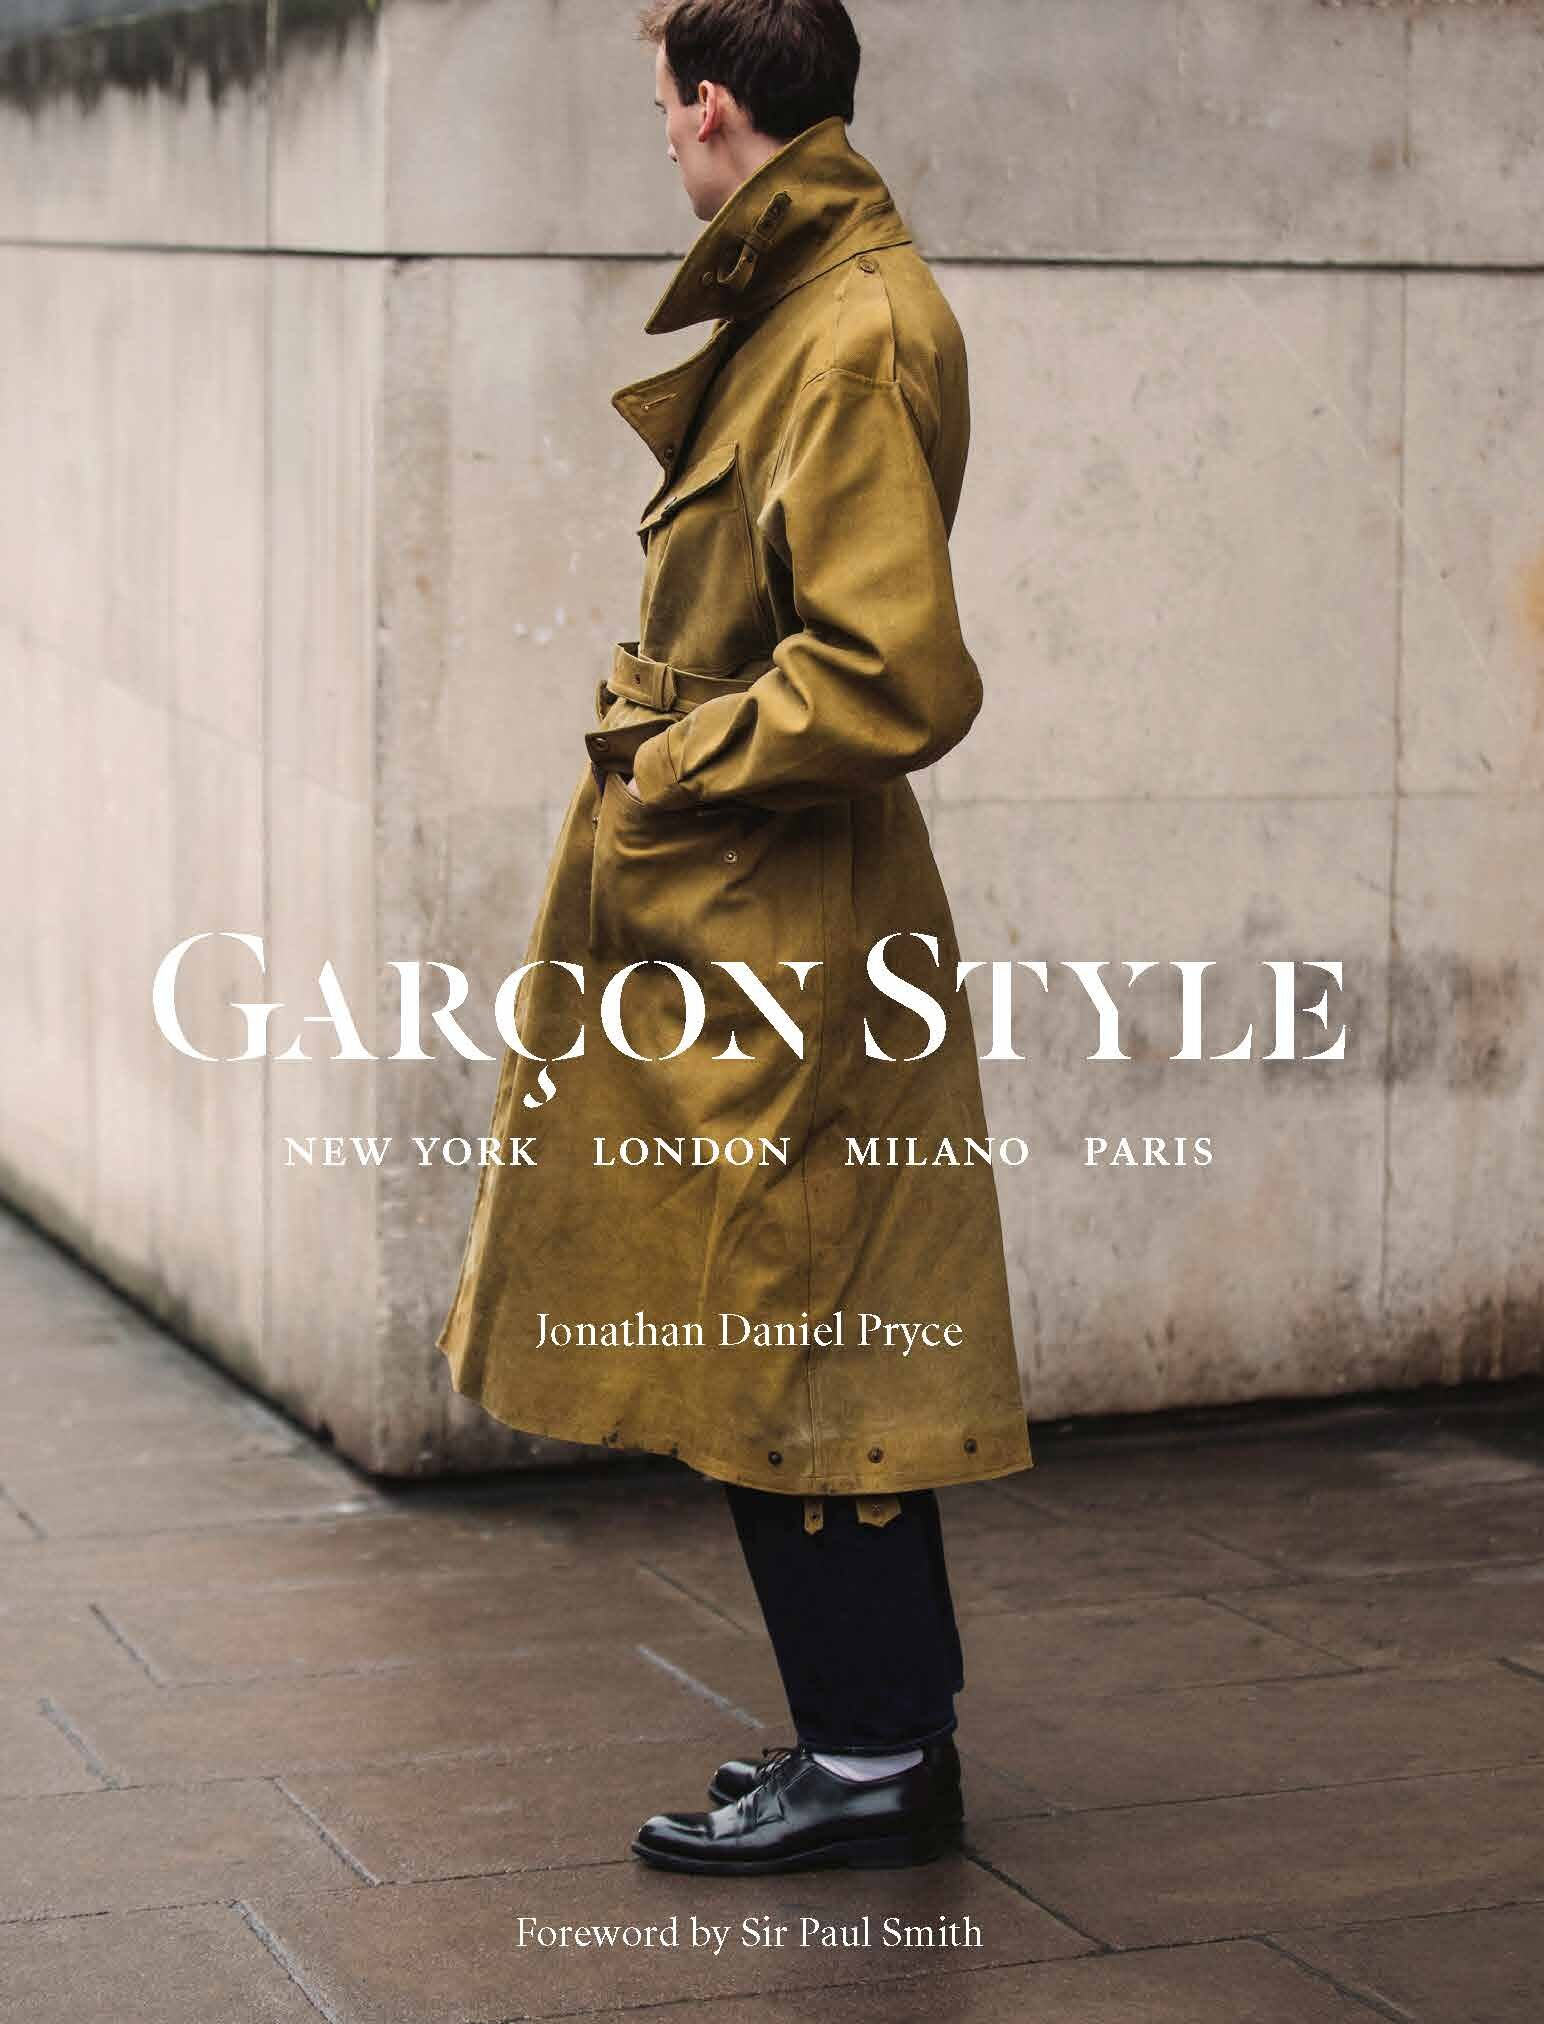 GARÇON STYLE - New York London Milano Parisby Jonathan Daniel Pryce | Laurence King